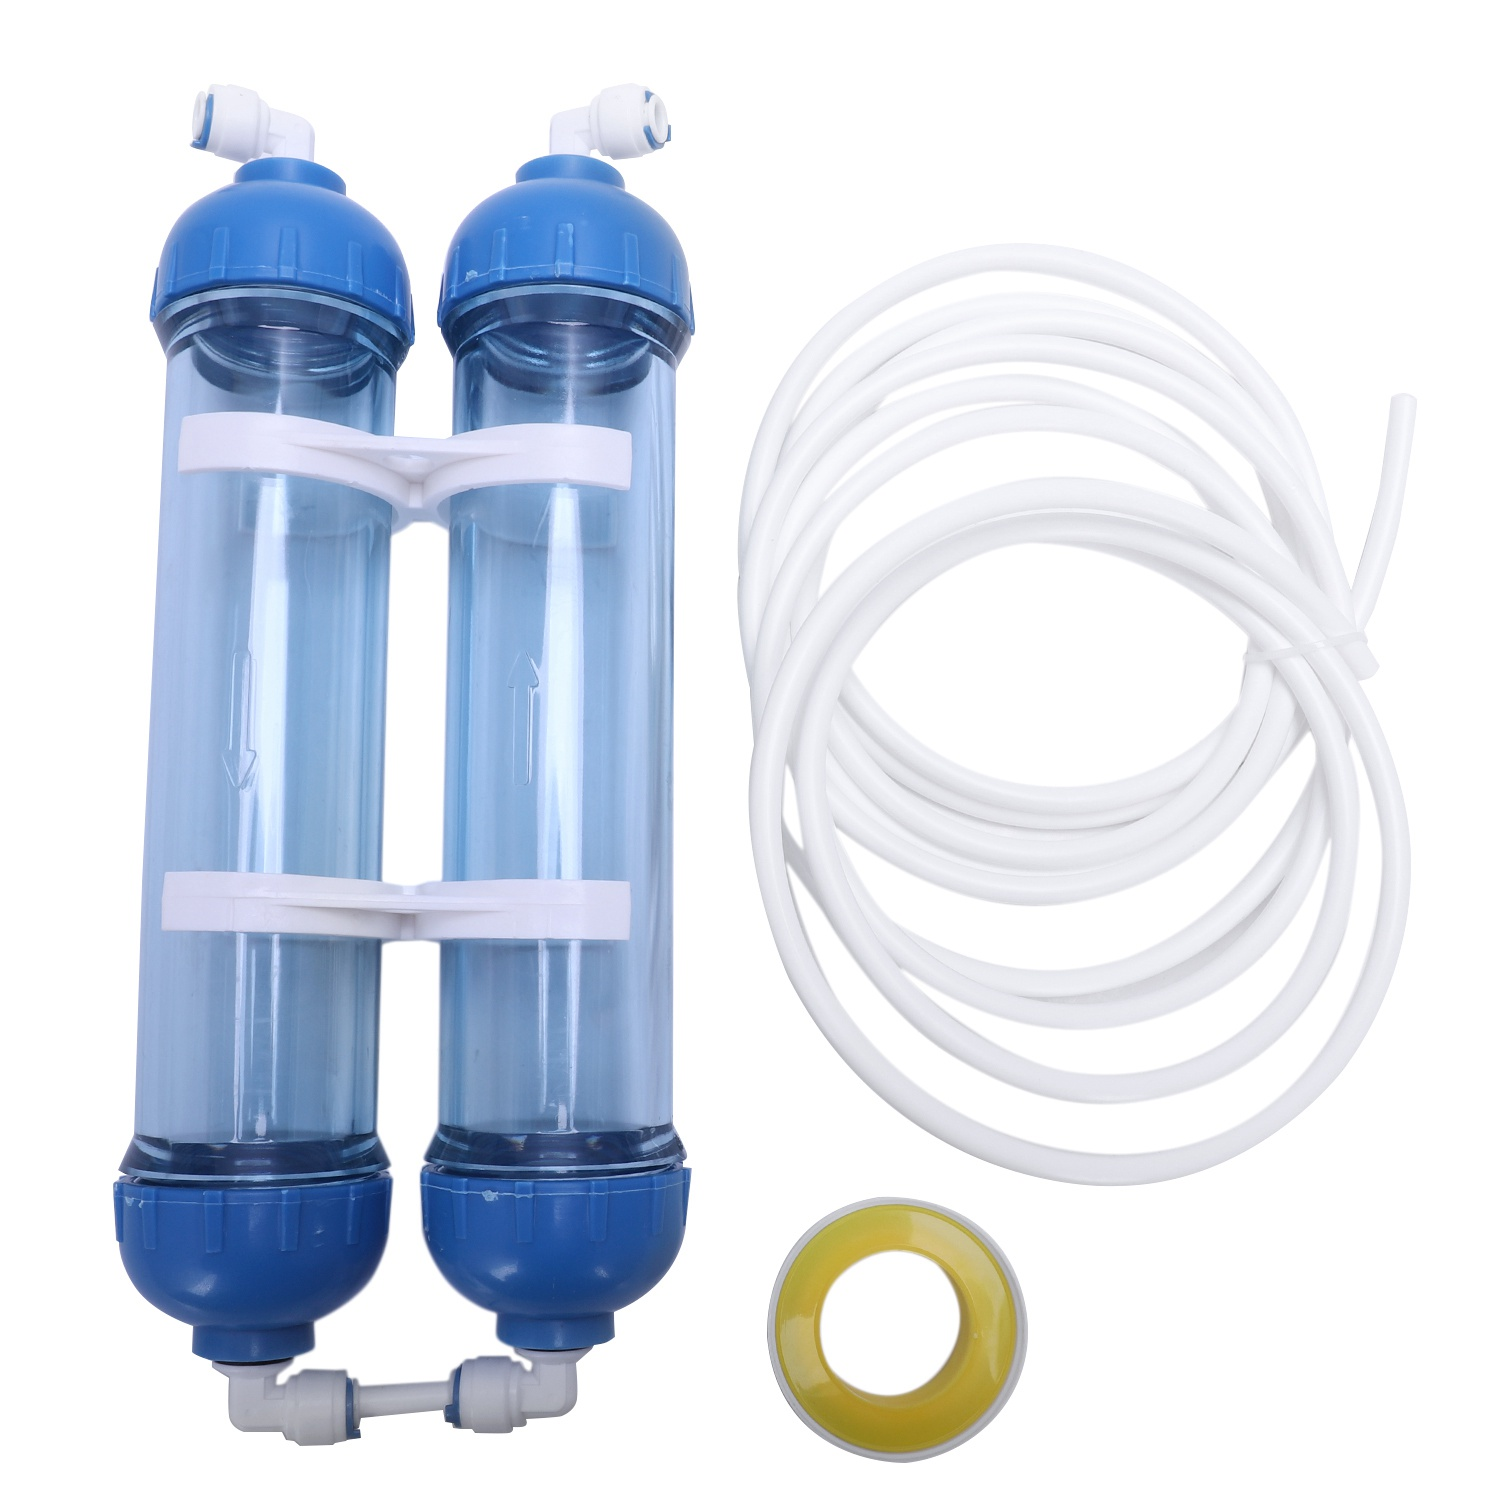 Water Filter 2Pcs T33 Cartridge Housing Diy T33 Shell Filter Bottle 4Pcs Fittings Water Purifier For Reverse Osmosis System